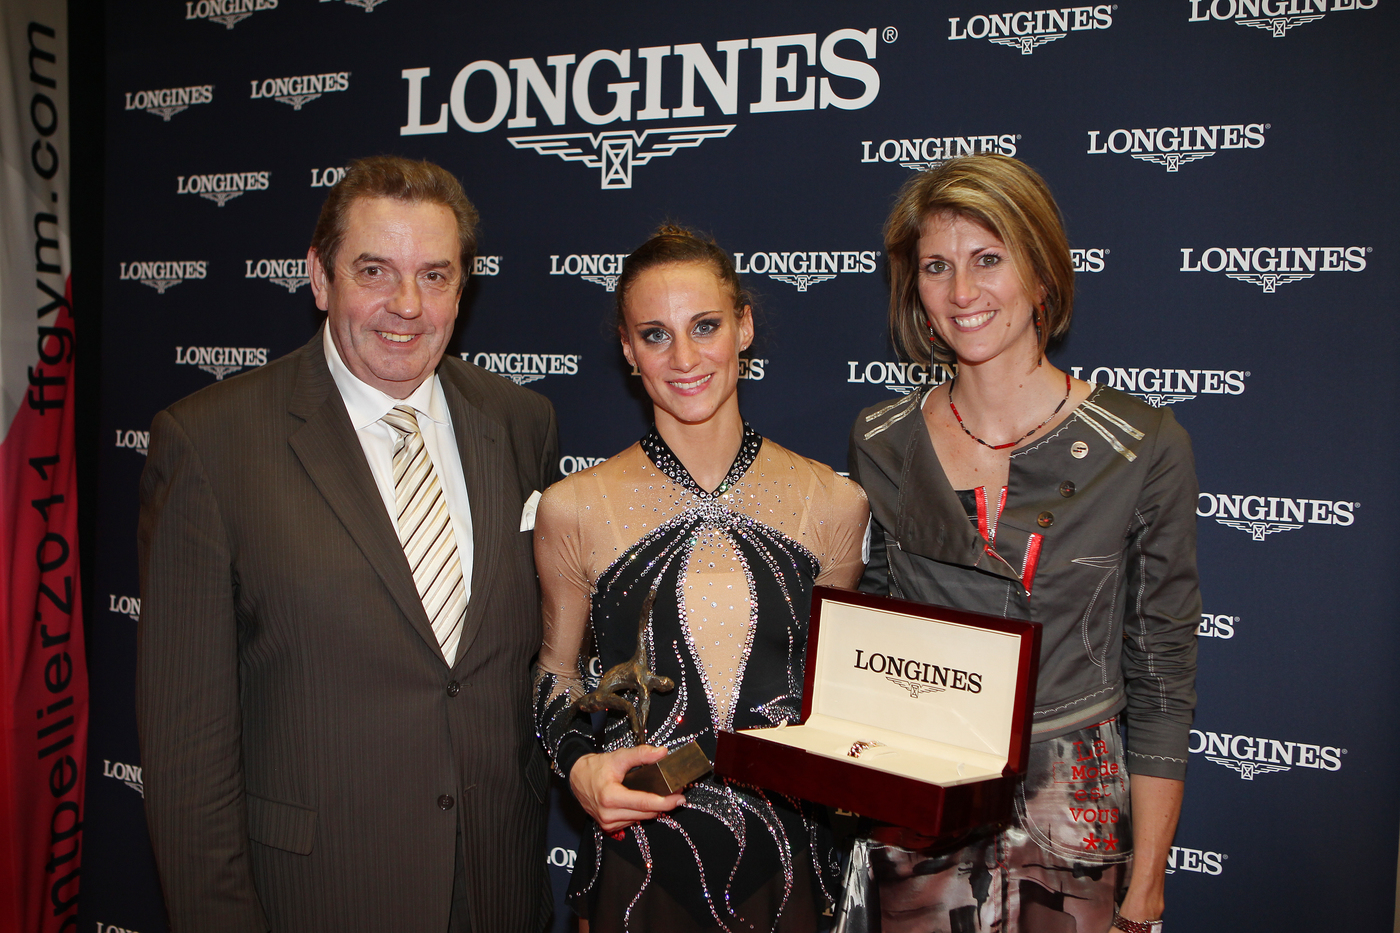 Longines Gymnastics Event: Rhythmic Gymnastics World Championships 2011 9